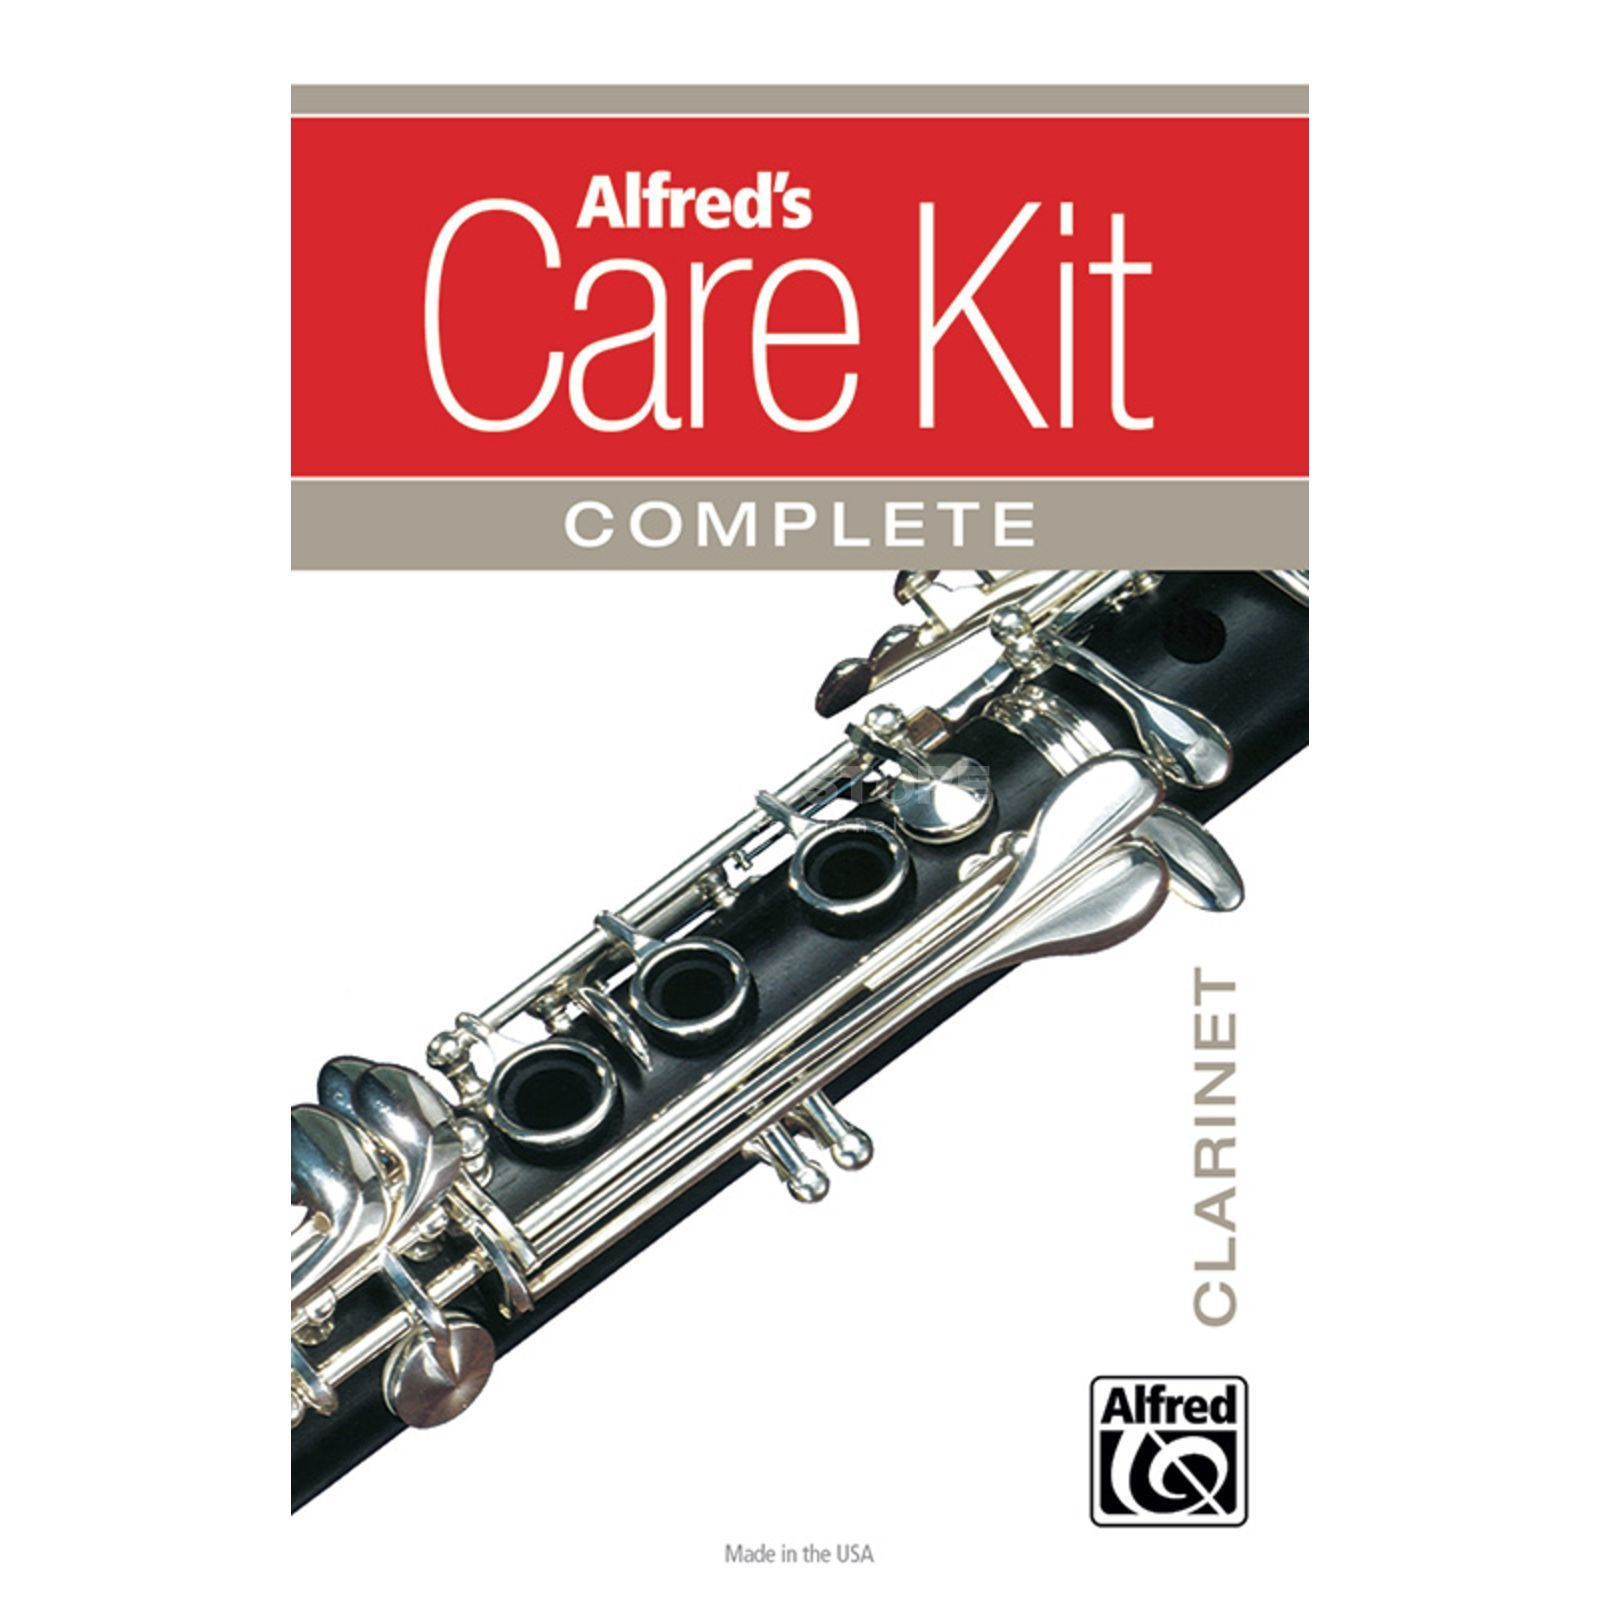 Alfred Music Care Kit Complete: Clarinete  Imagen del producto